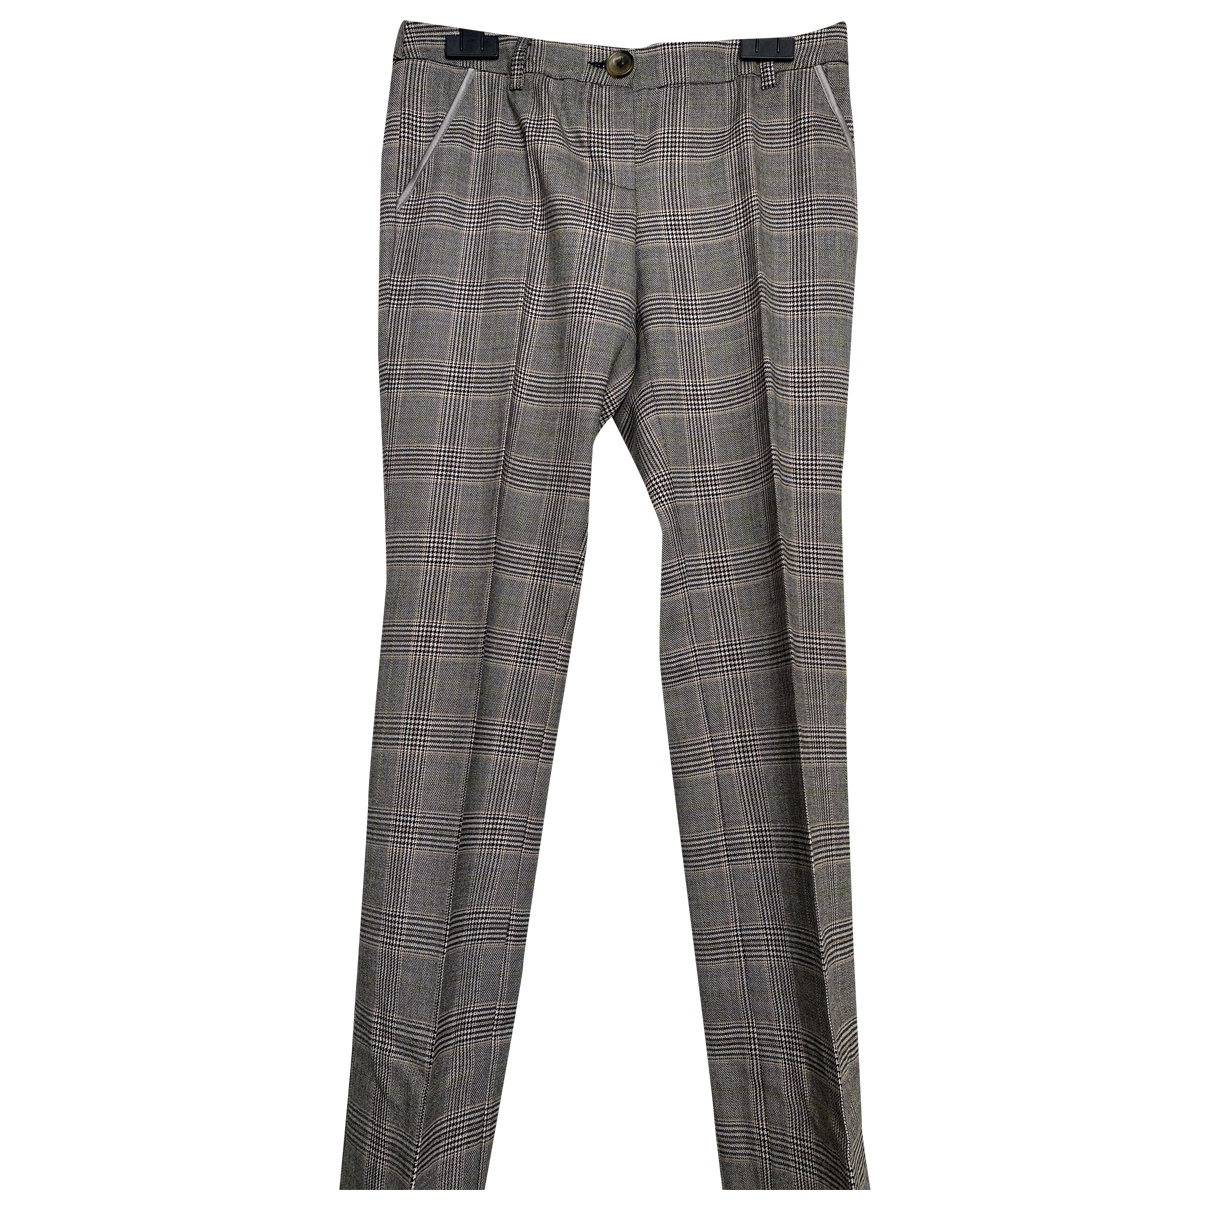 D&g \N Grey Wool Trousers for Women 40 IT